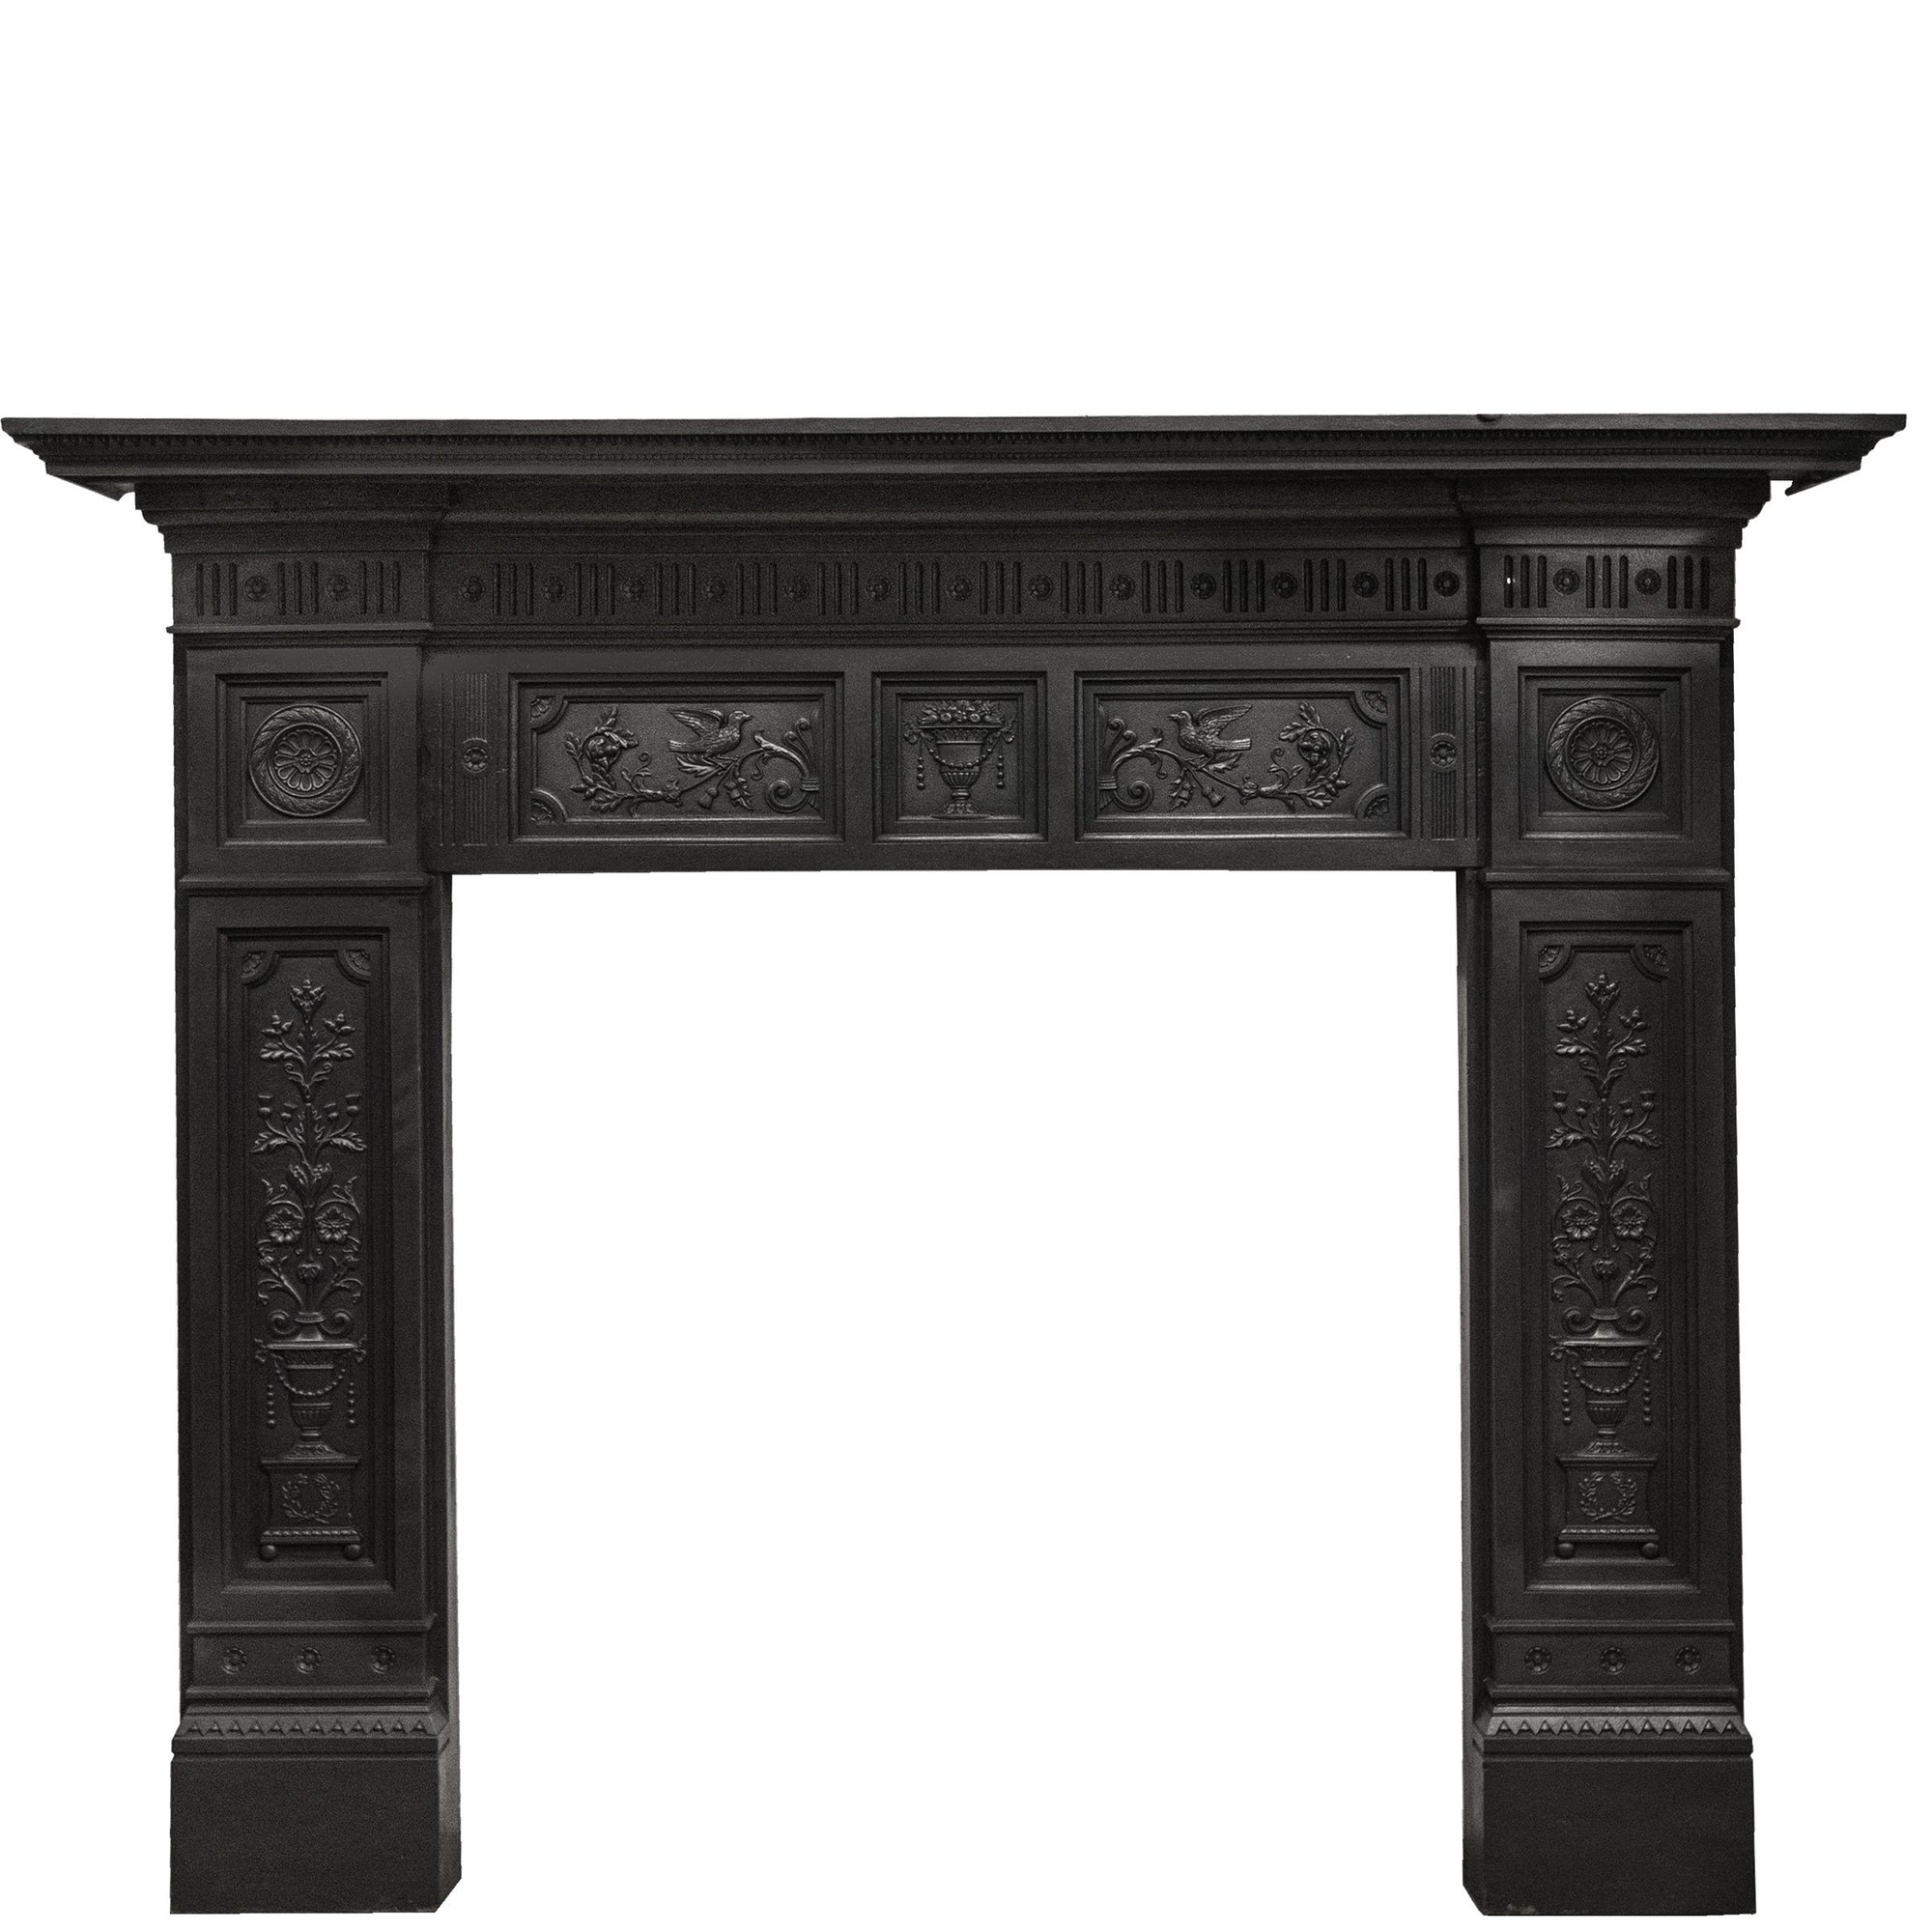 Antique Victorian Cast Iron Fireplace Surround | The Architectural Forum